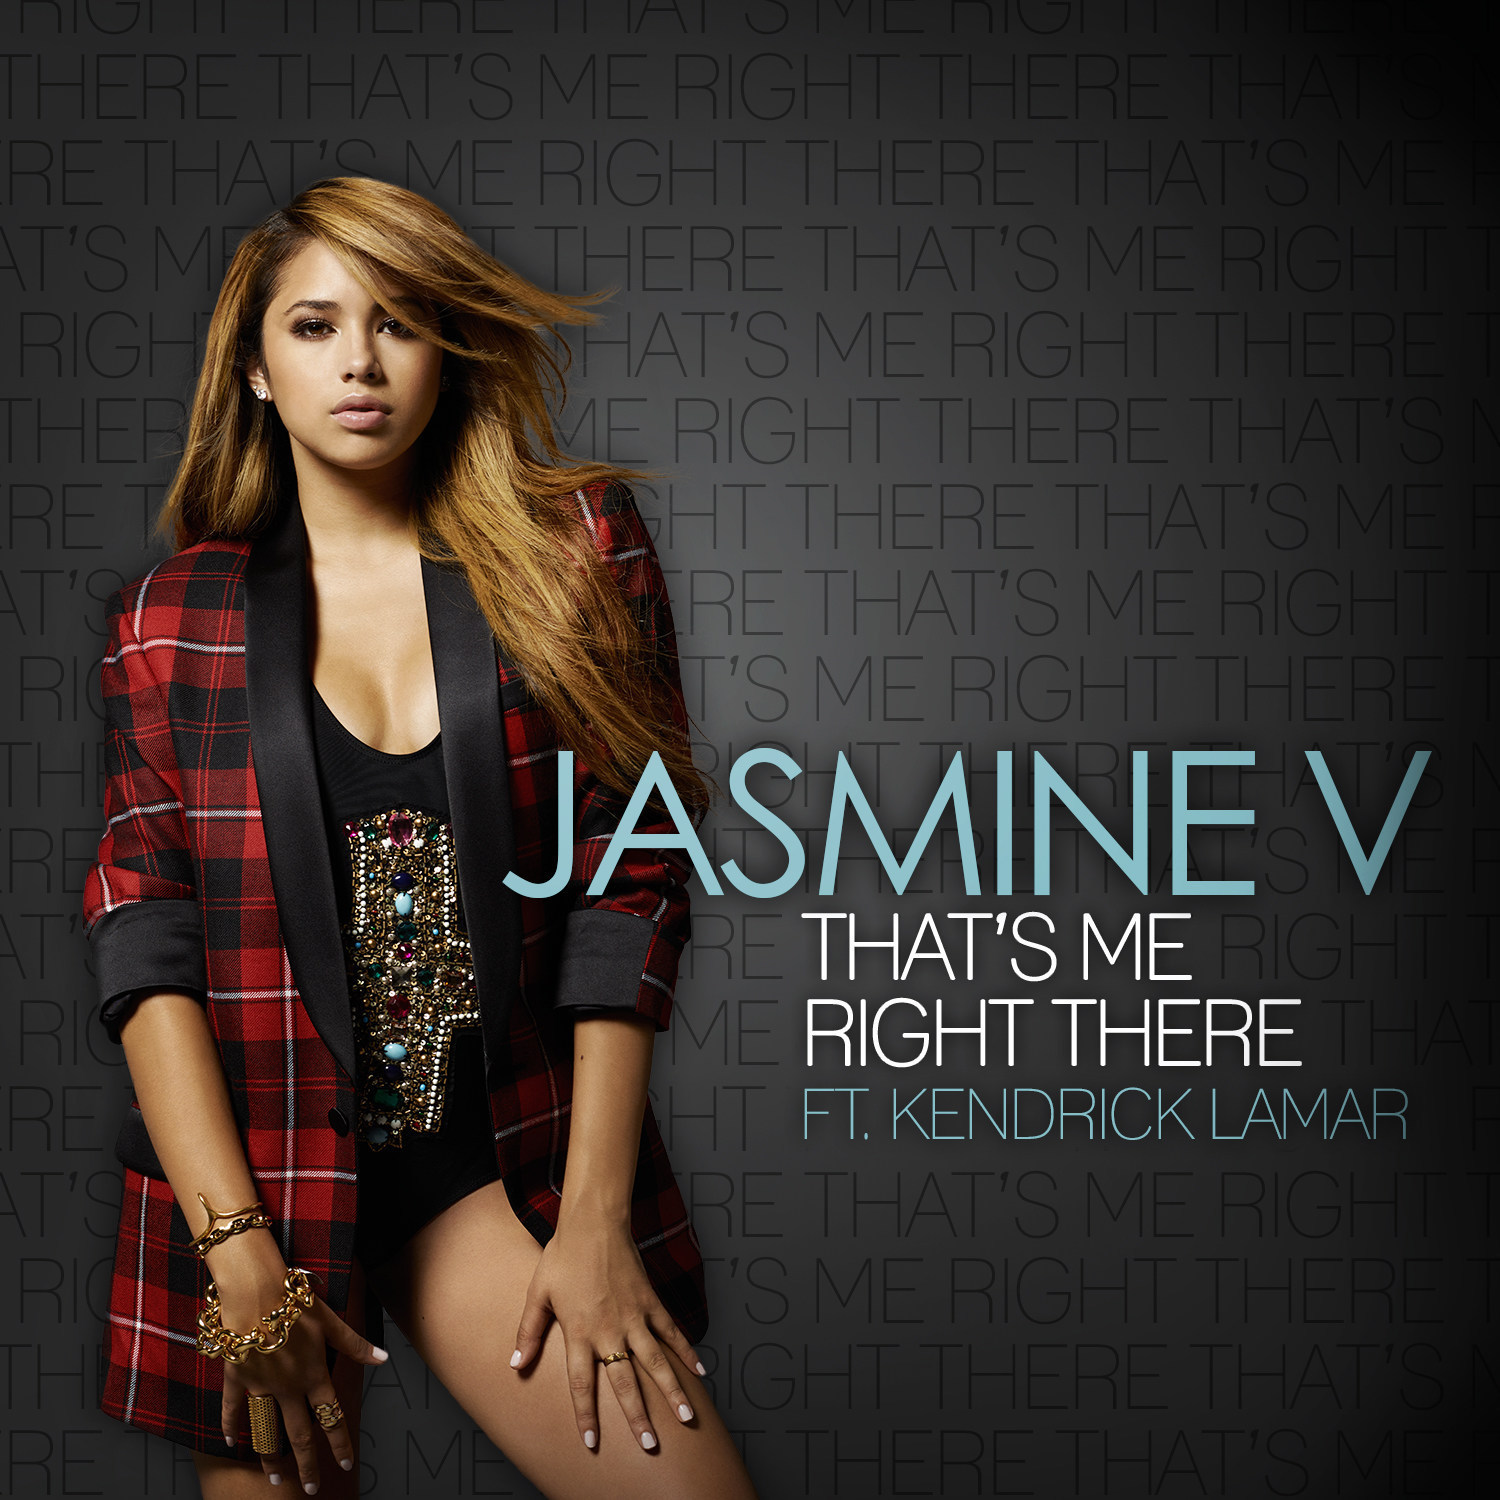 Jasmine V Debuts 'That's Me Right There' Featuring Kendrick Lamar This August